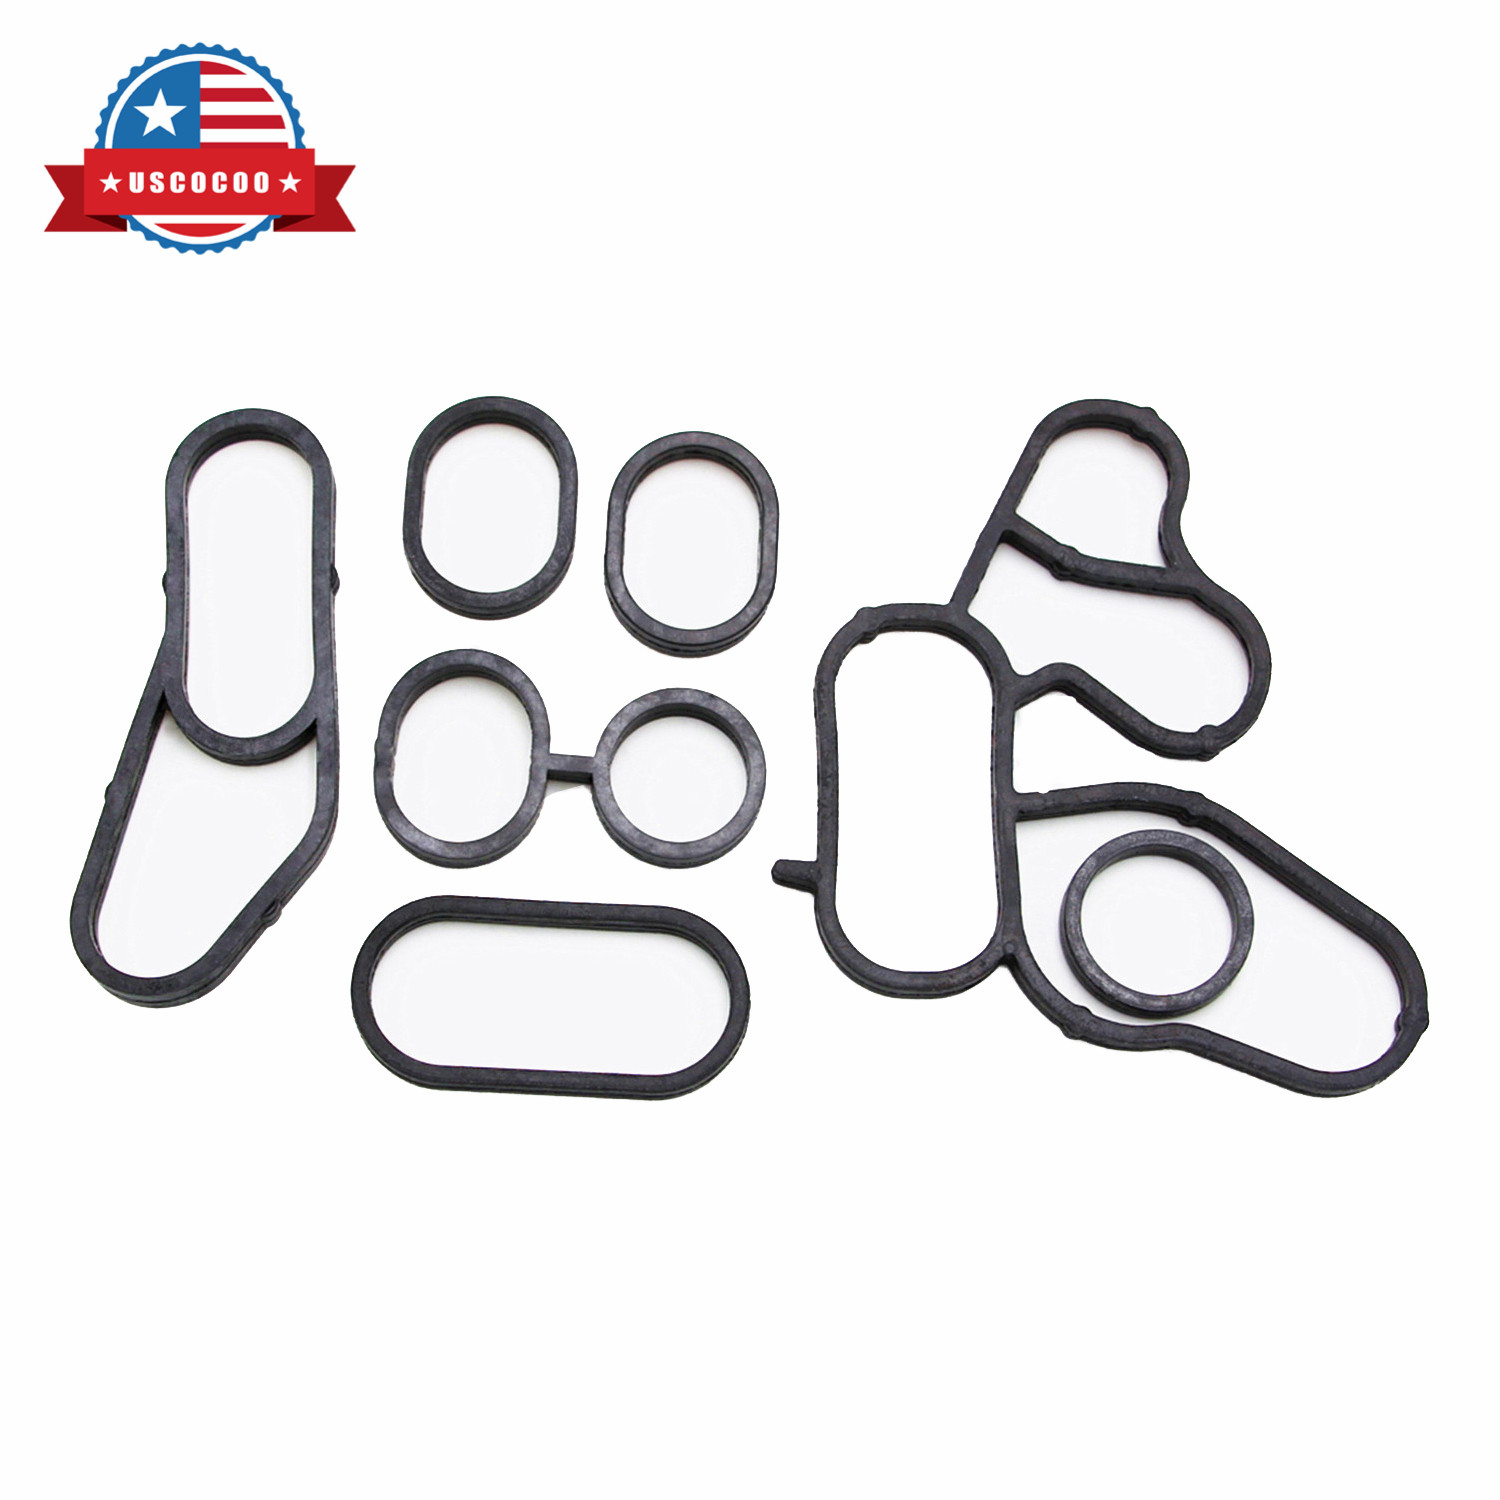 Oil Cooler Gasket Kit Fits for Opel Vauxhall Combo Corsa C